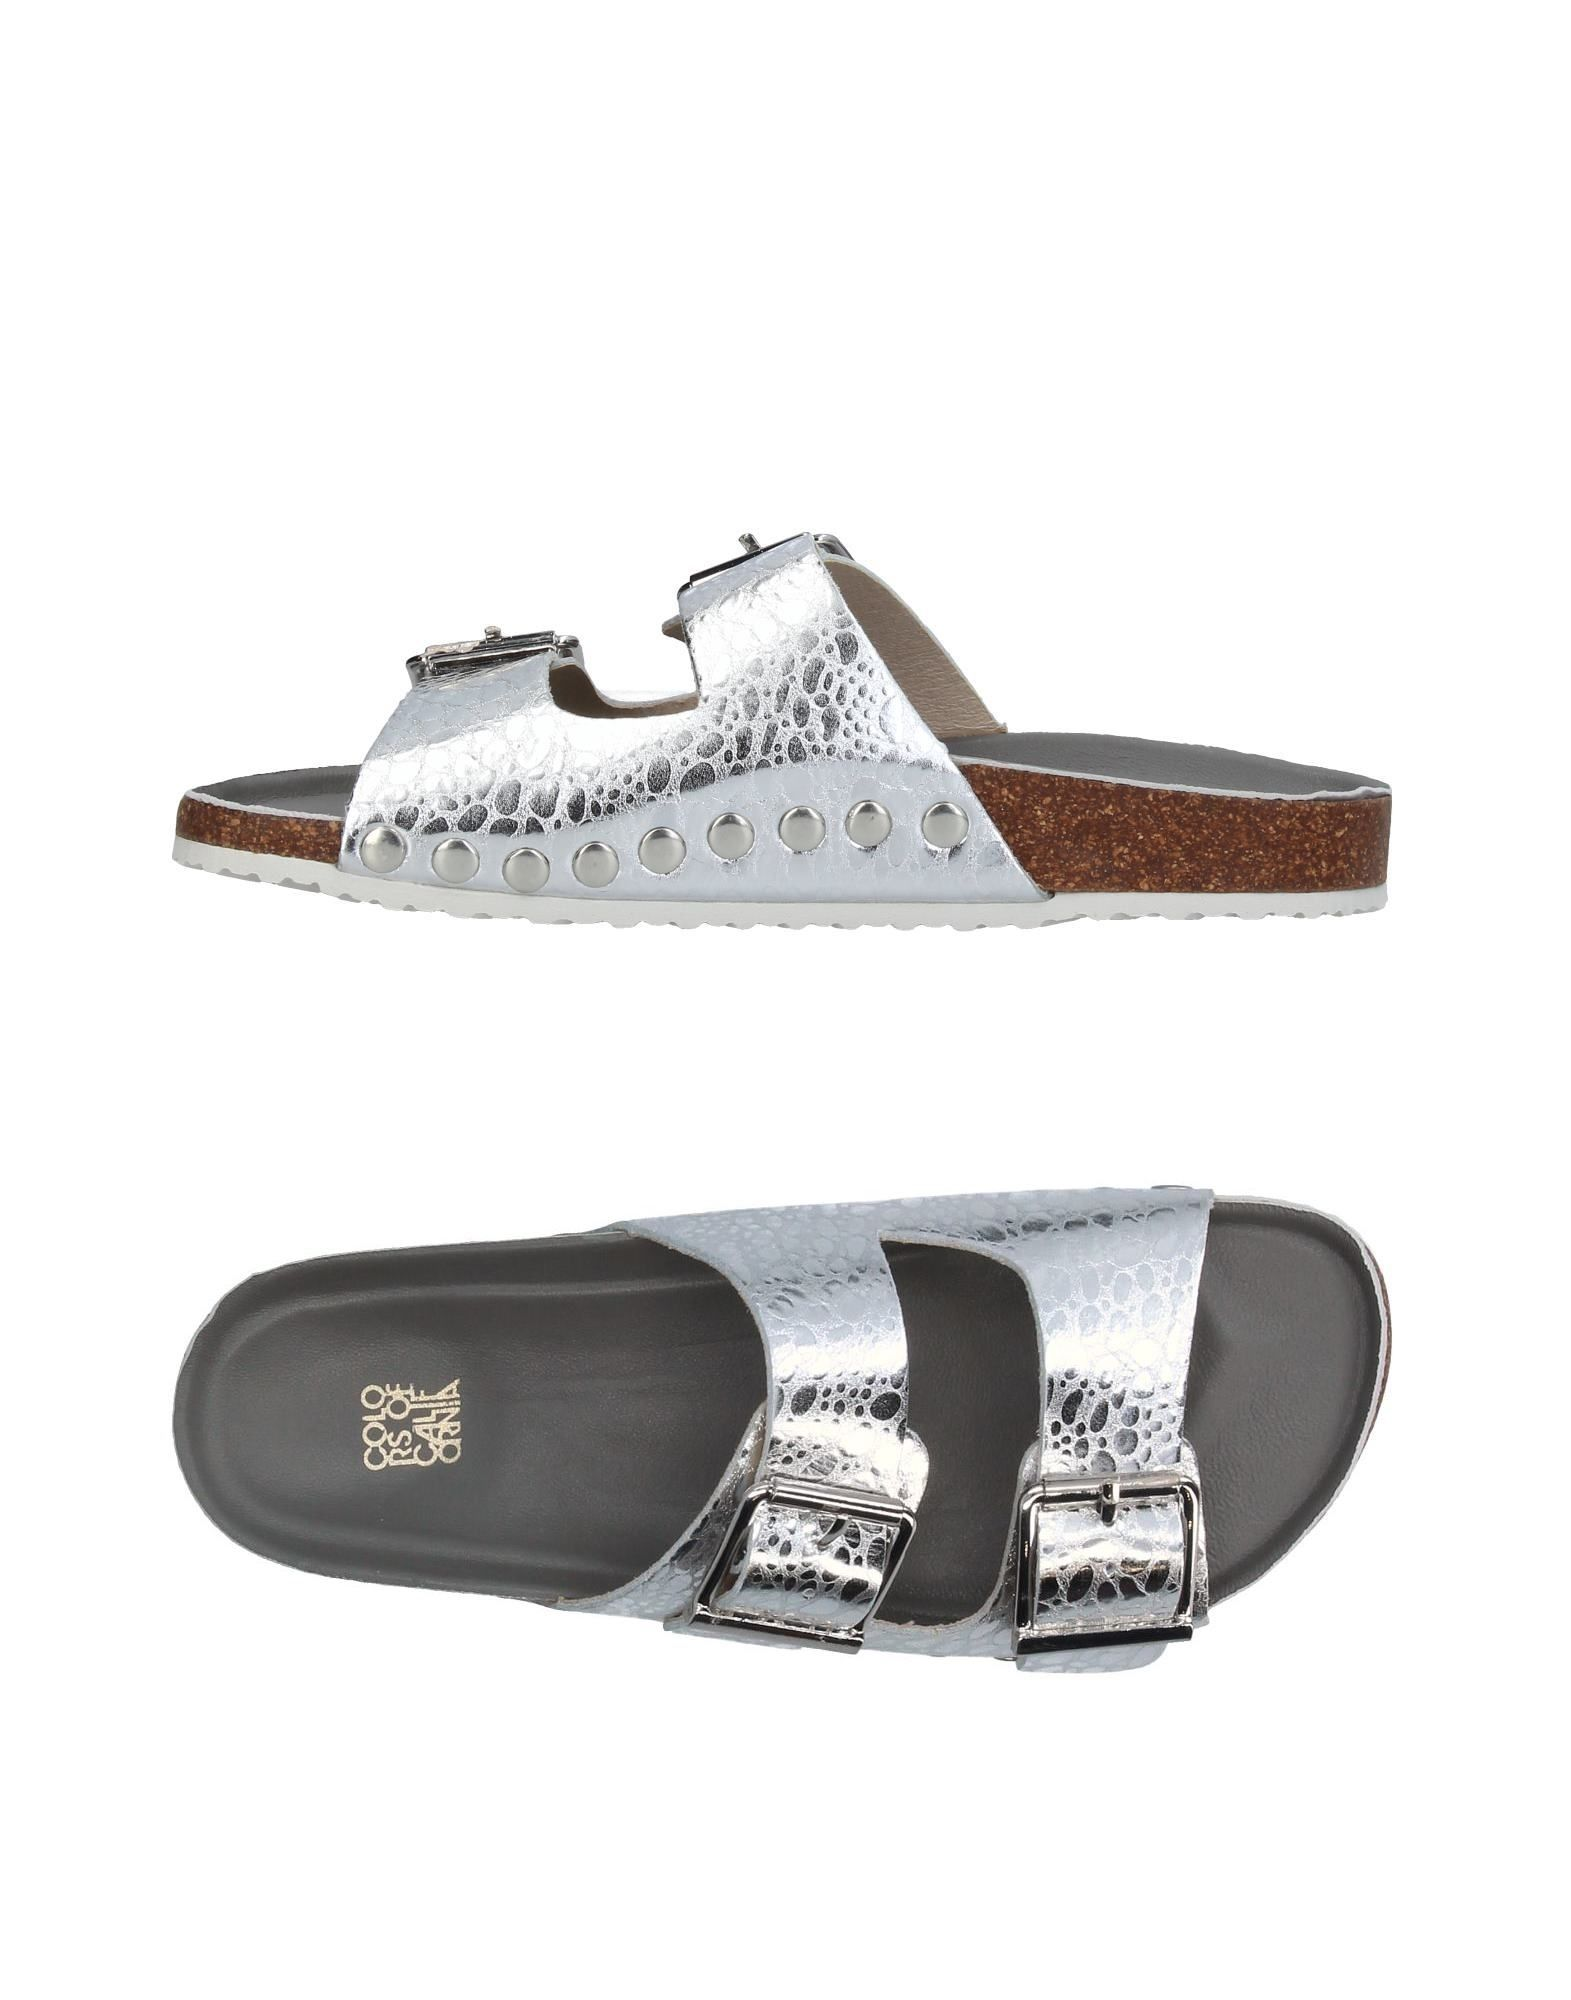 COLORS OF CALIFORNIA Sandals in Silver